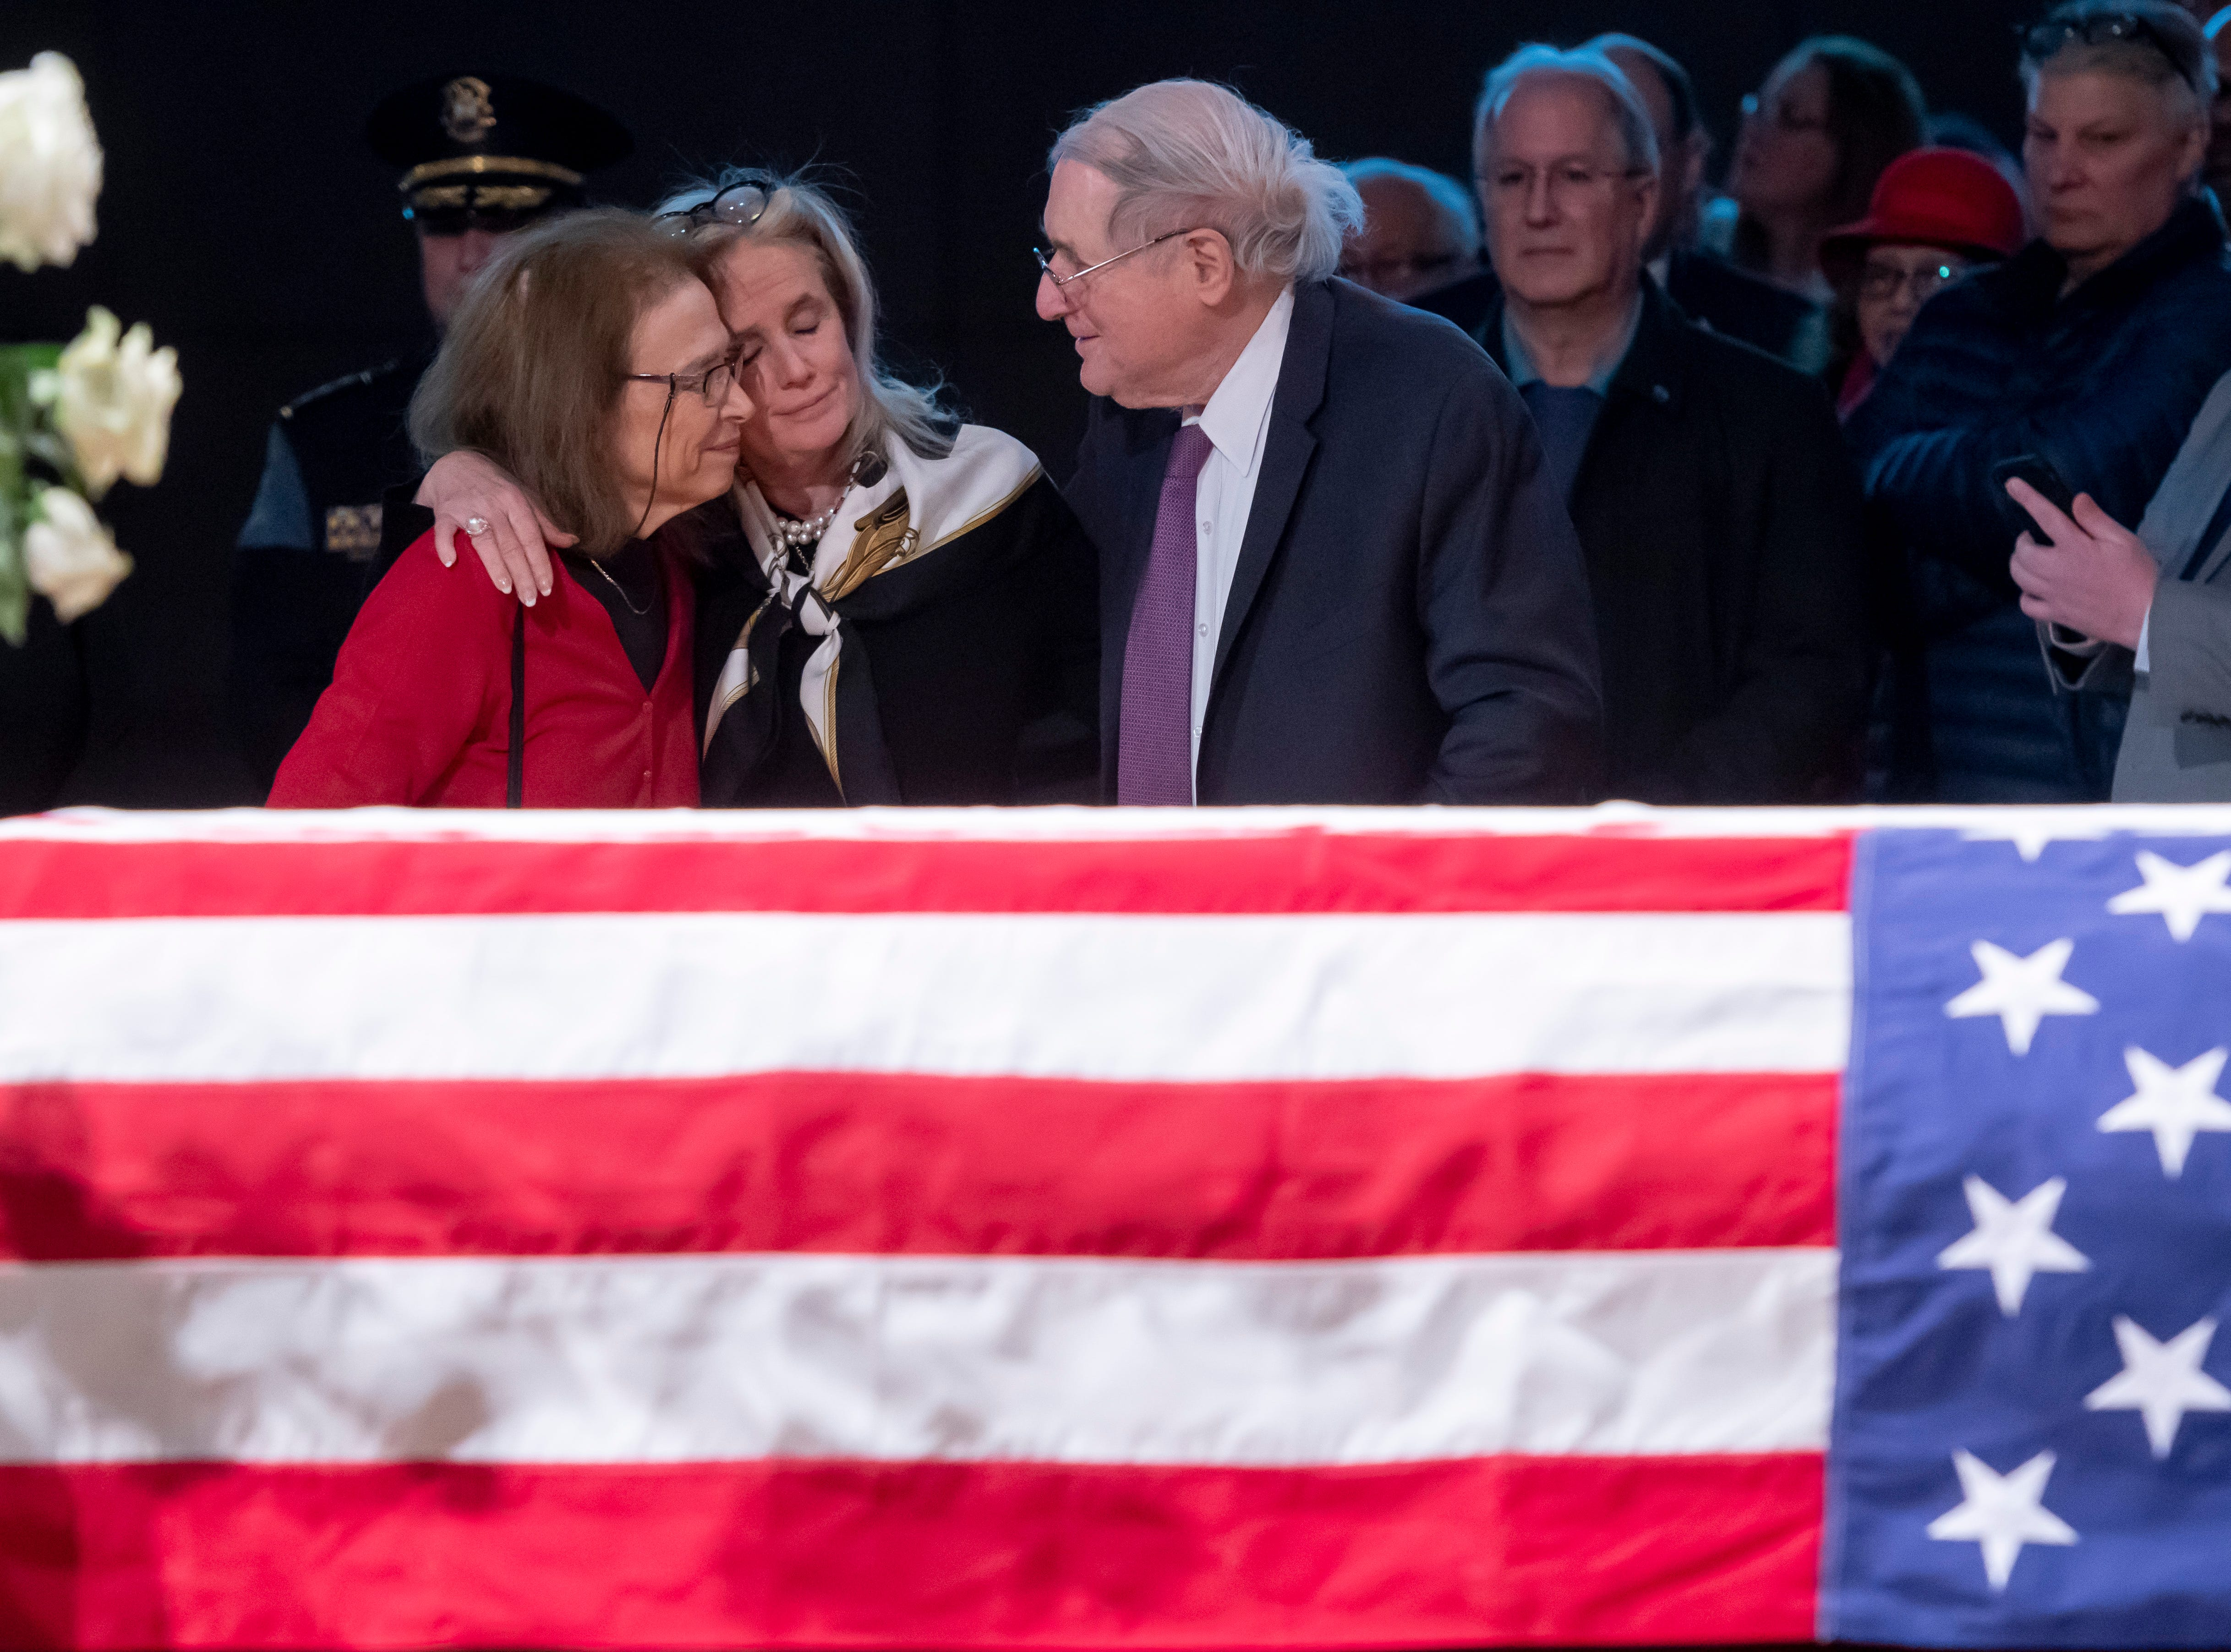 U.S. Representative Debbie Dingell, center, receives condolences from former U.S. Senator Carl Levin, right, and his wife Barbara during the visitation.